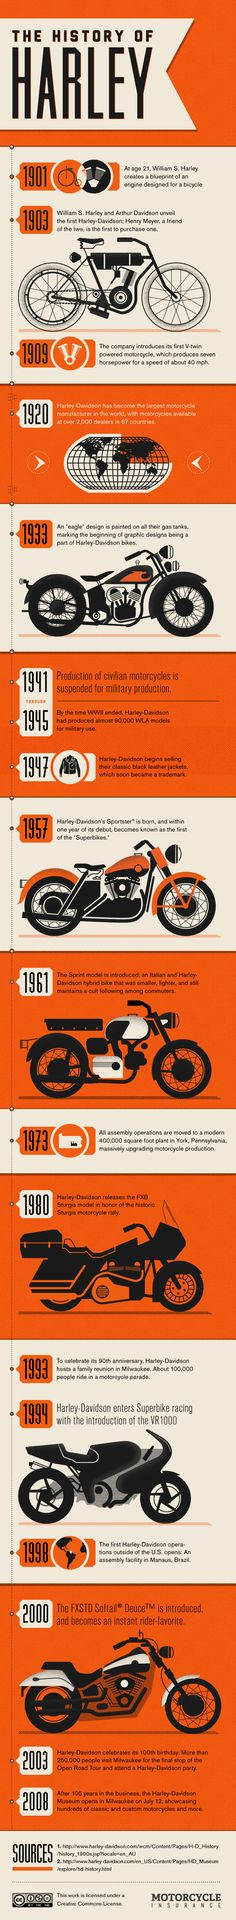 The history of Harley